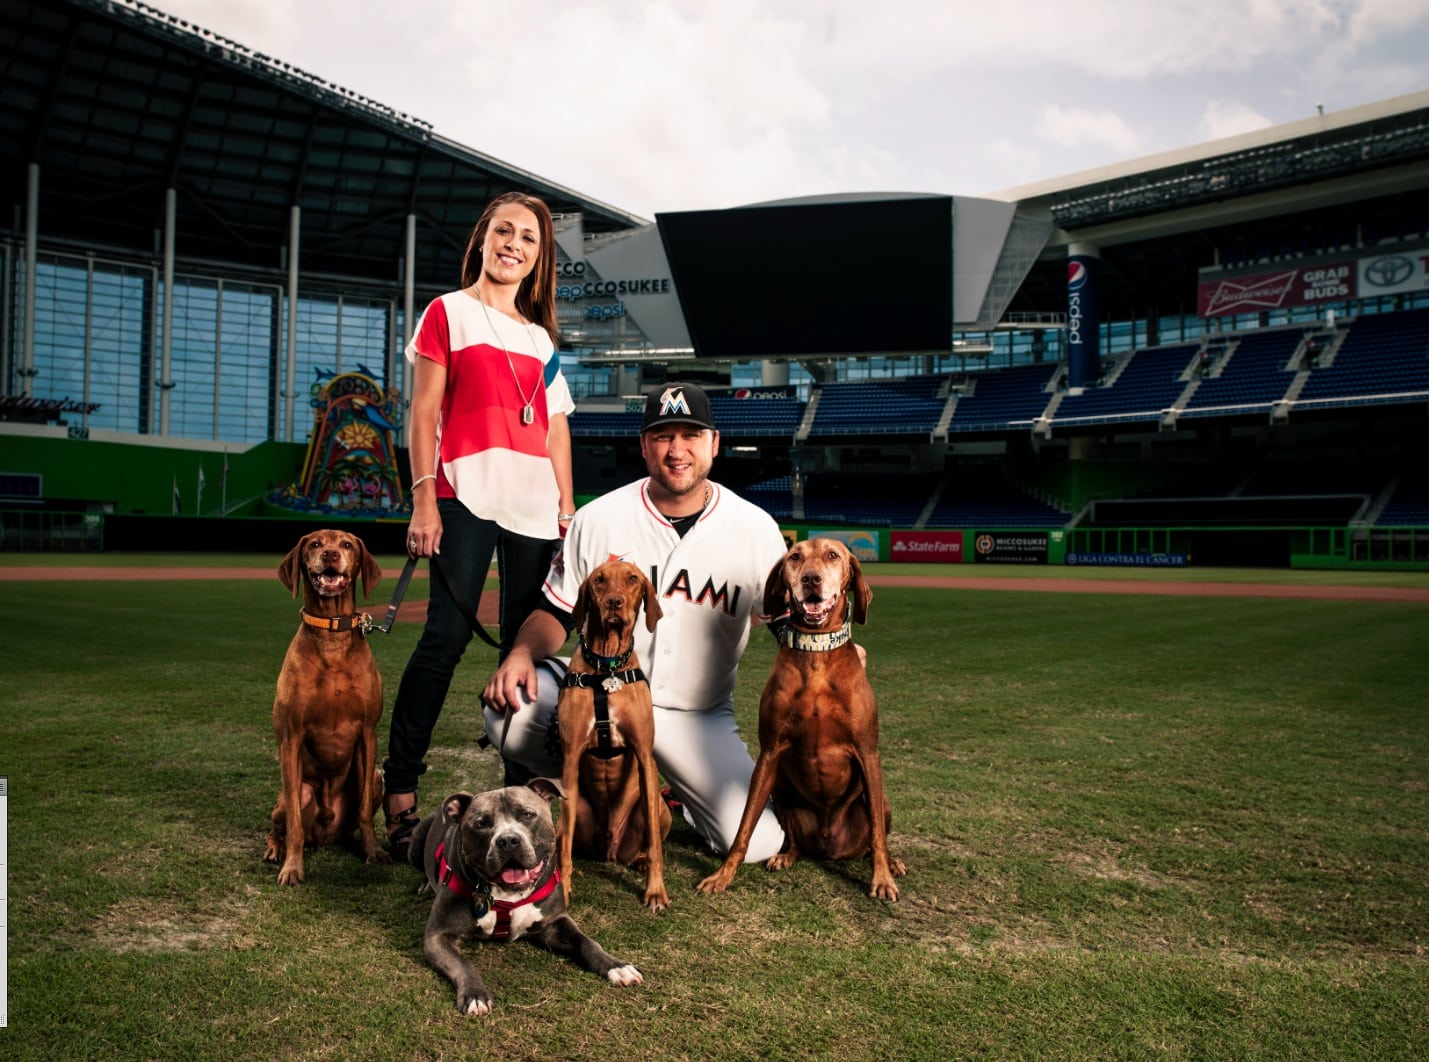 Pit Bull Rescued from Death Row Now at Home With Professional Pitcher's Family